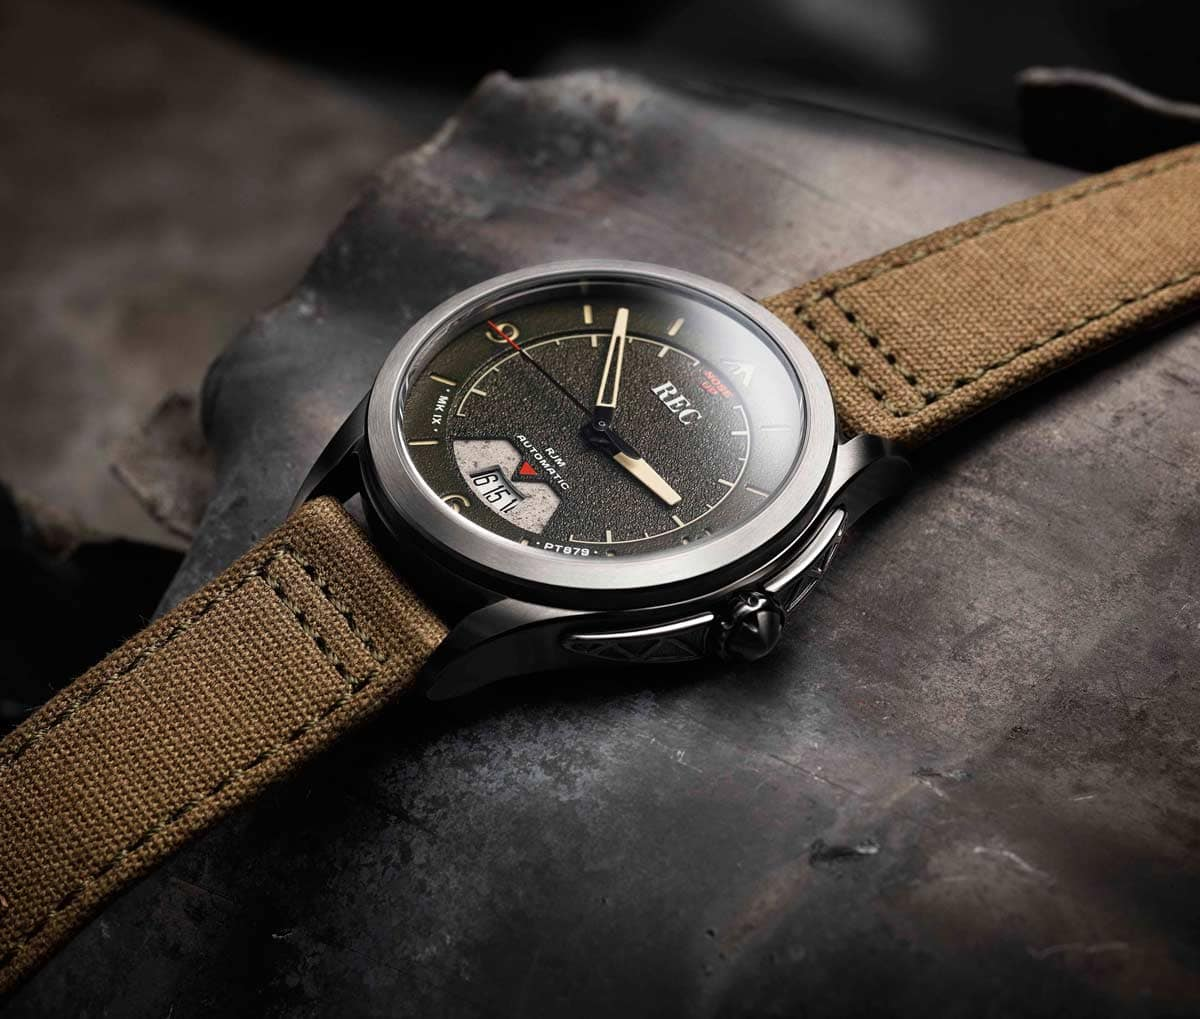 From crashed Spitfire aircraft to unique timepiece